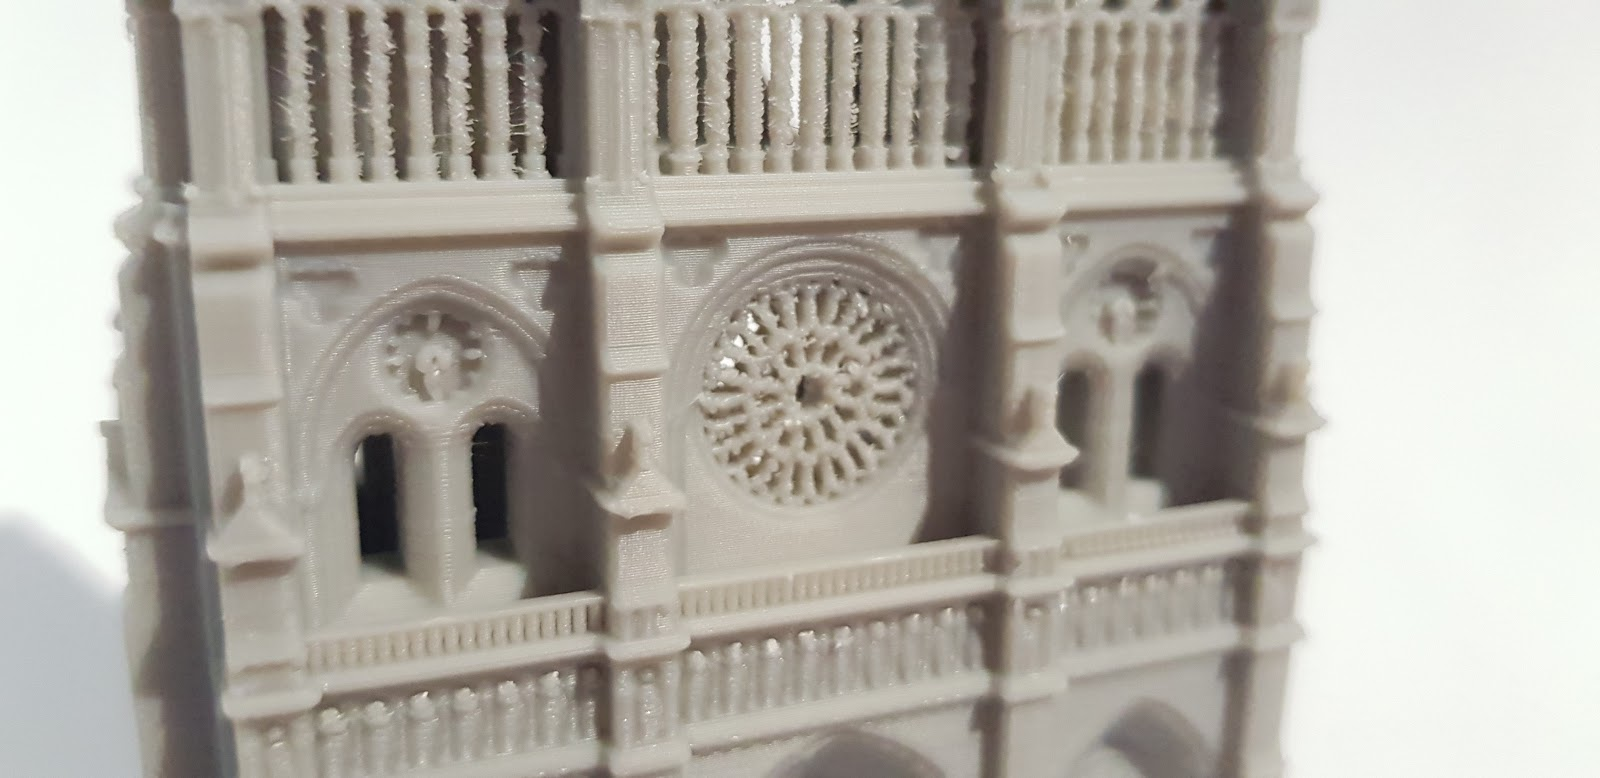 The 3D printed Notre Dame model.